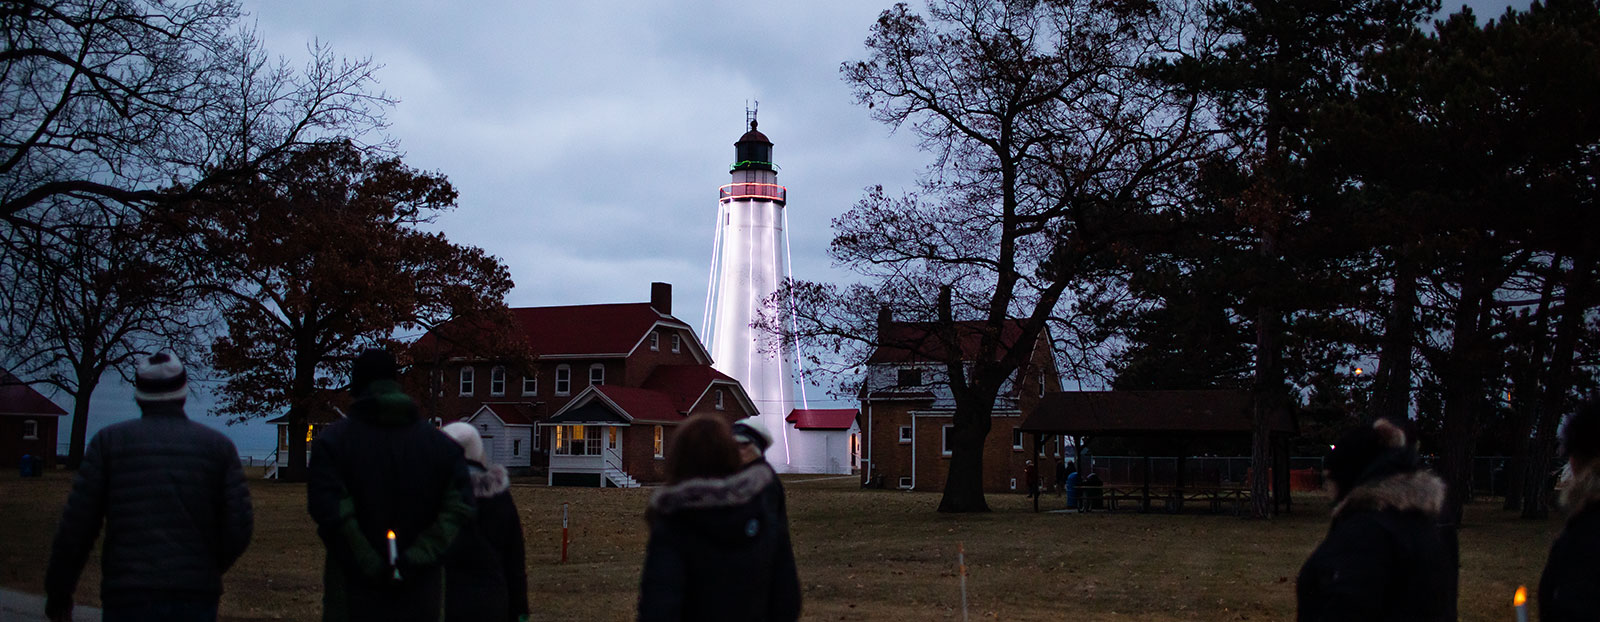 The Fort Gratiot Light Station is a beacon on the St. Clair River. <span class='image-credits'>David Lewinski</span>